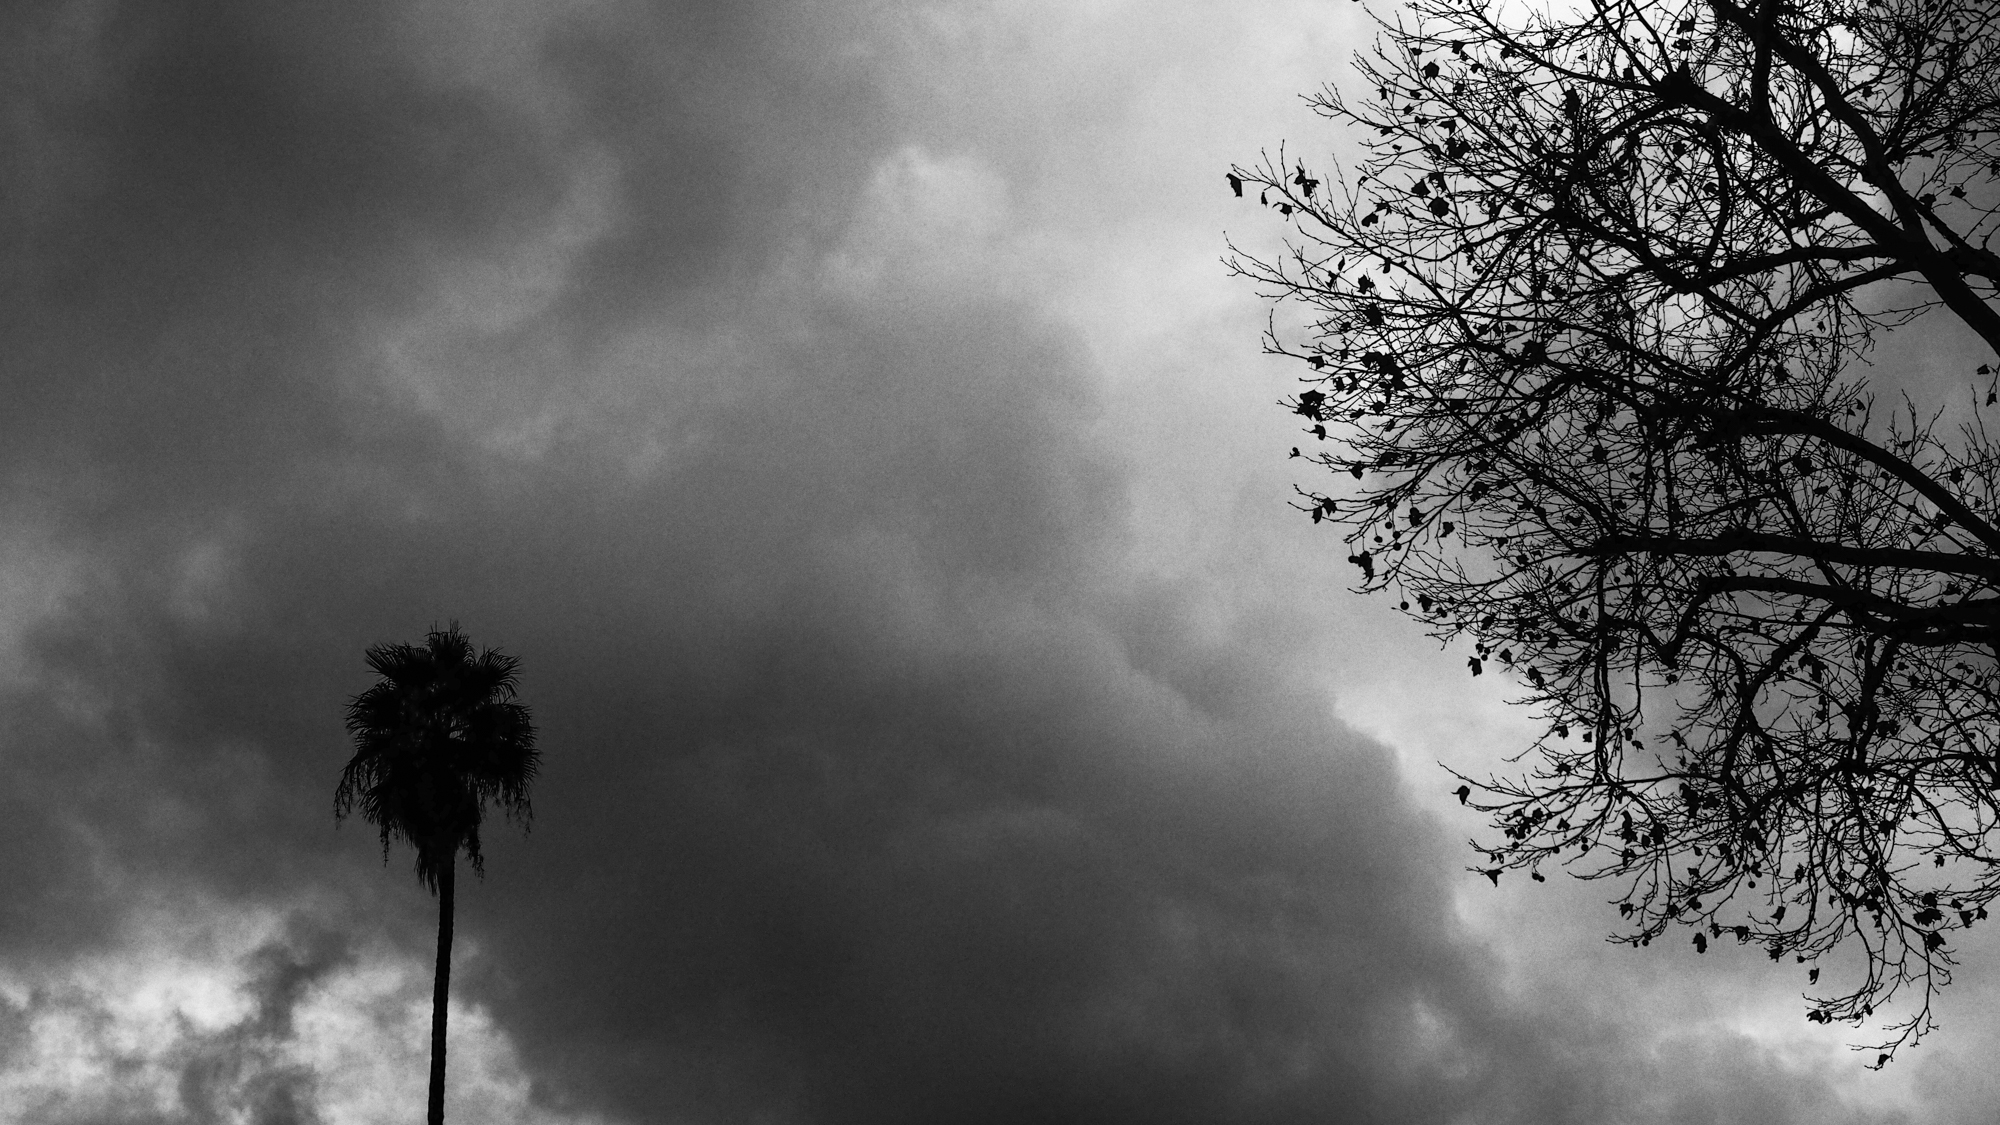 Two Trees on a Cloudy Day